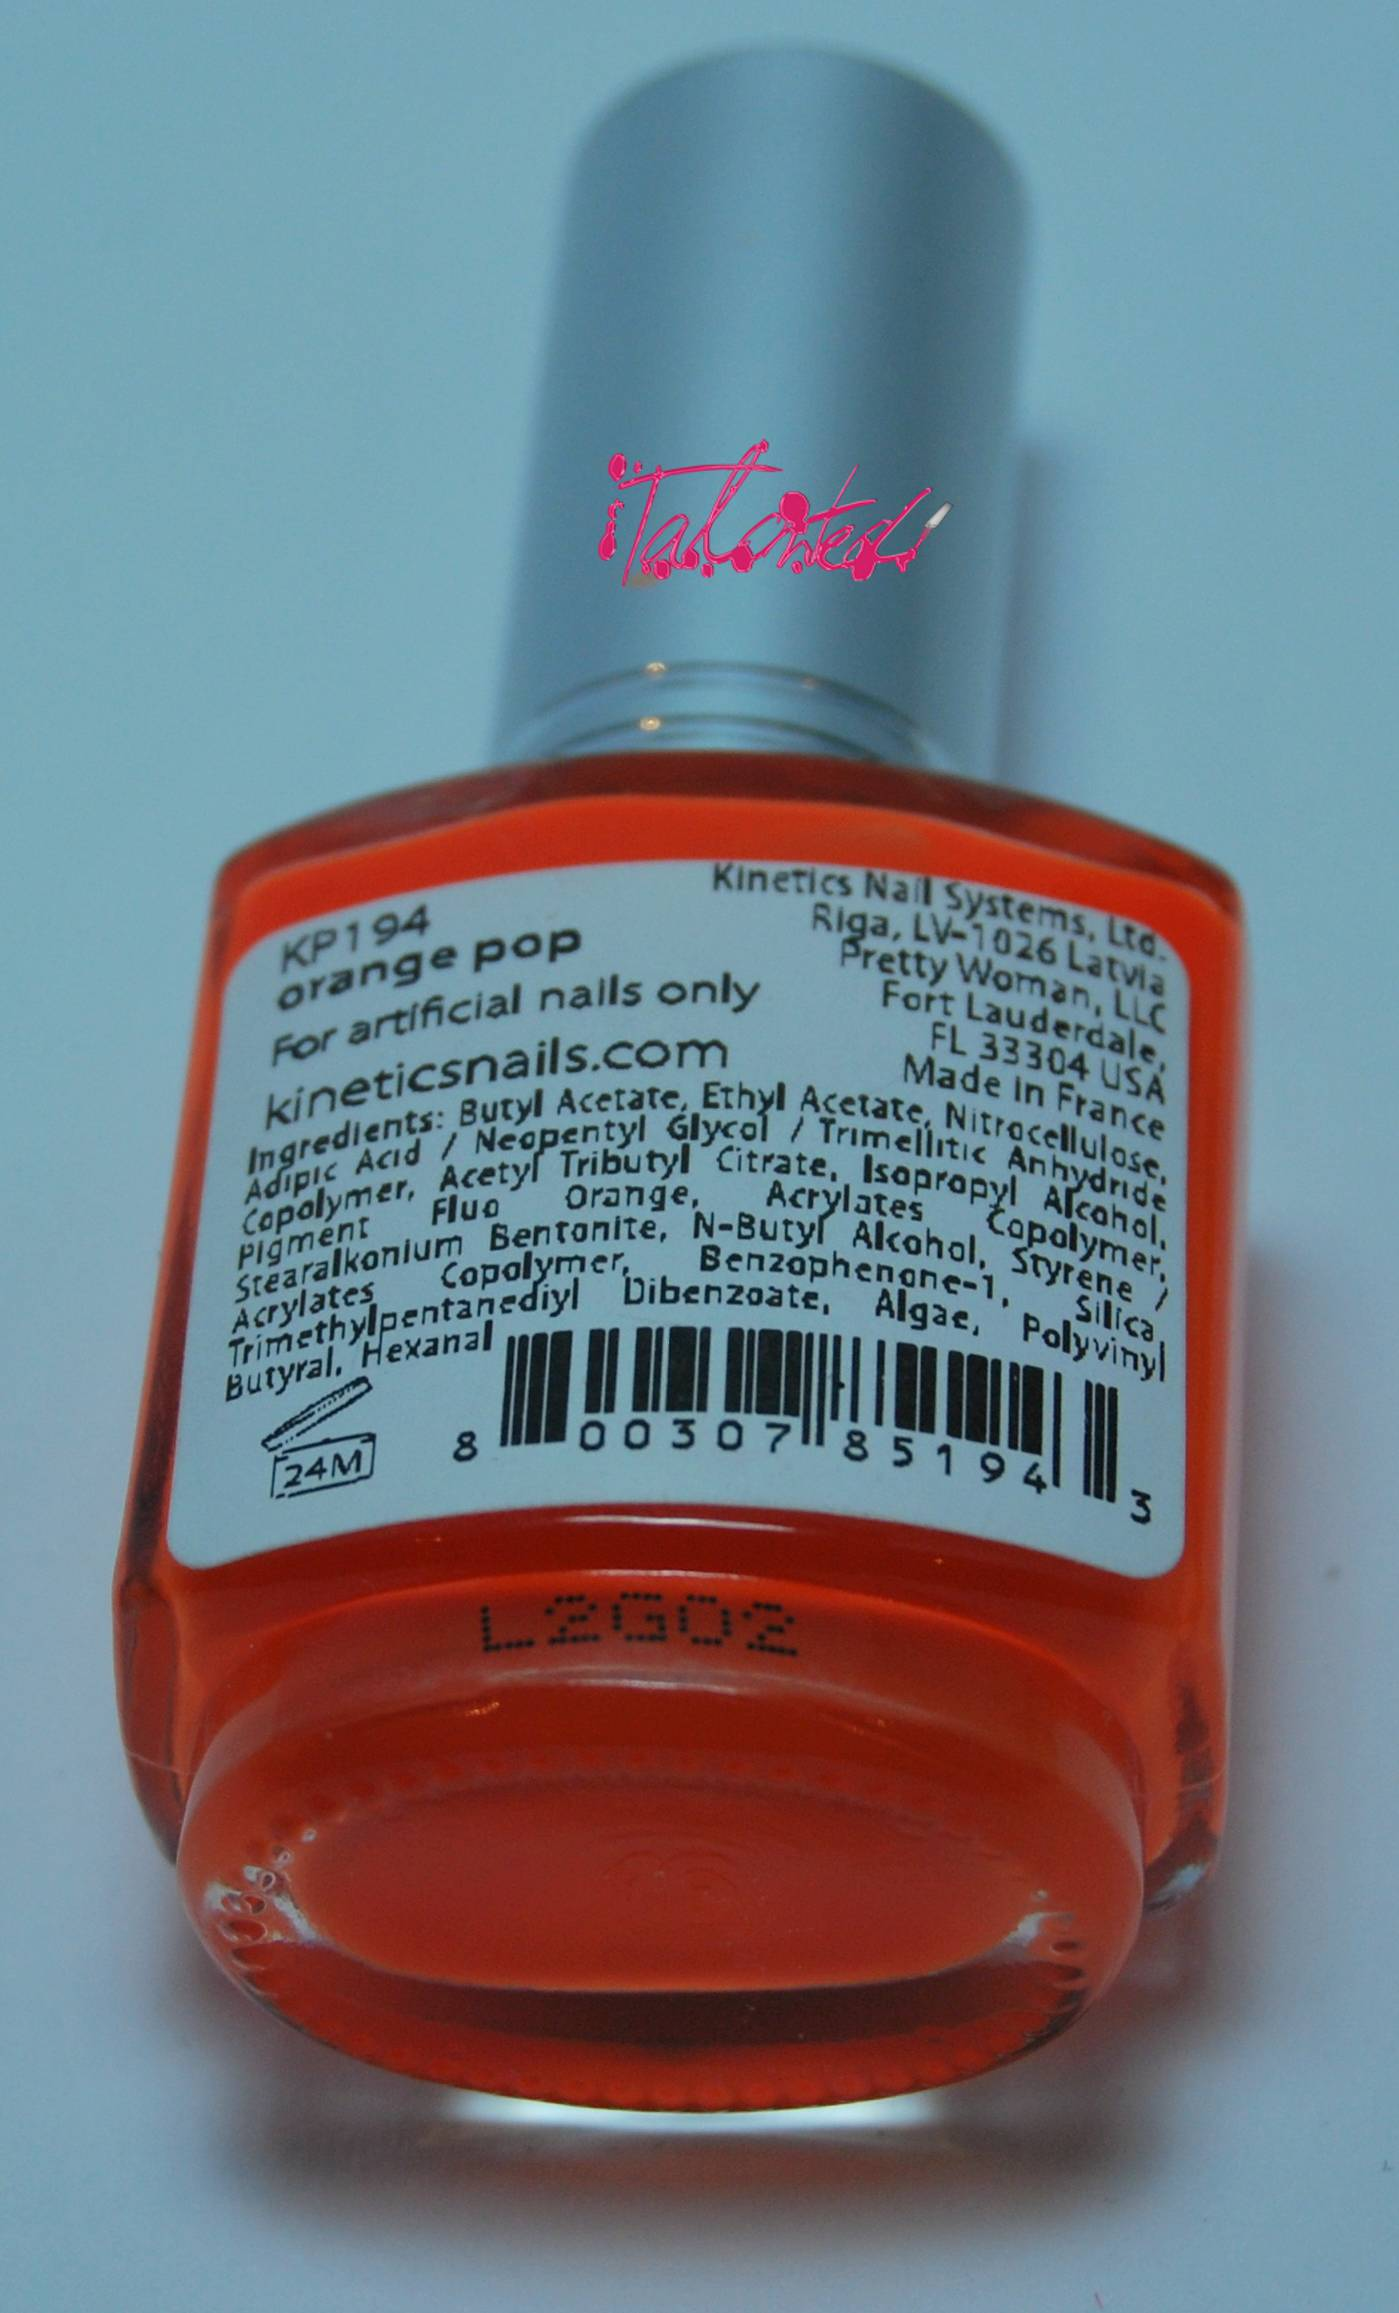 Kinetics Orange Pop Review